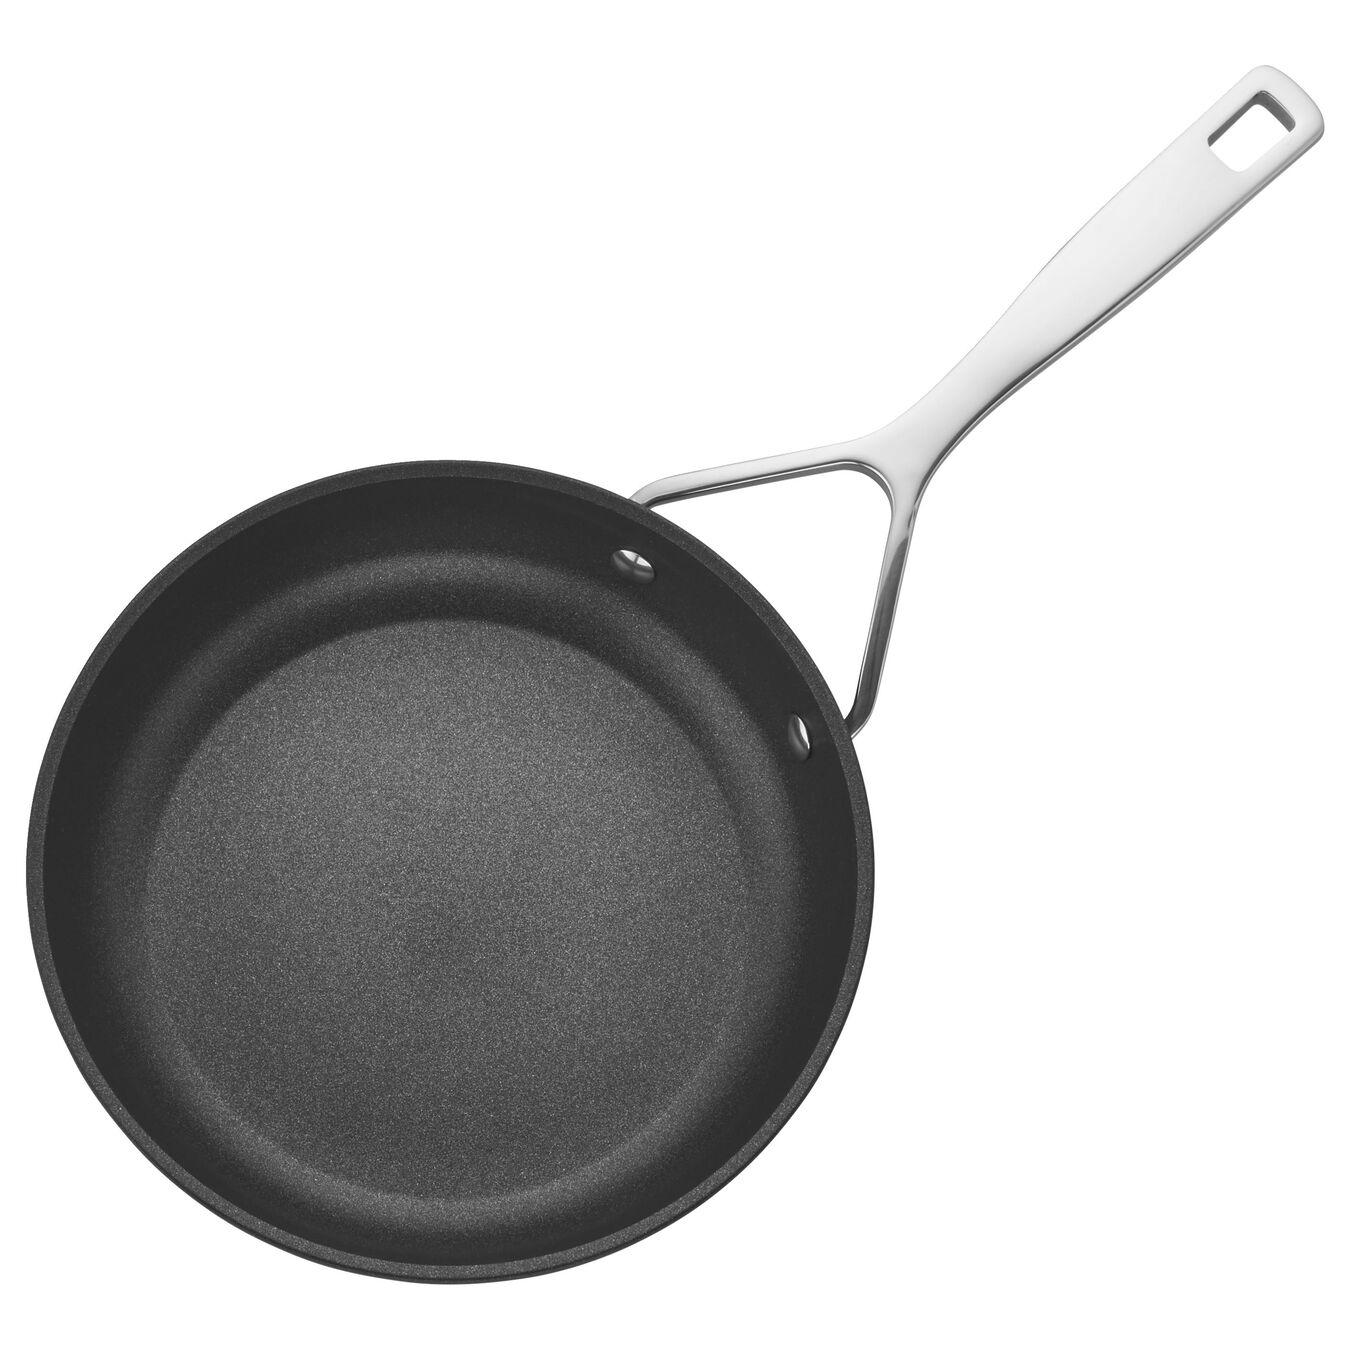 8-inch Aluminum Nonstick Fry Pan,,large 4